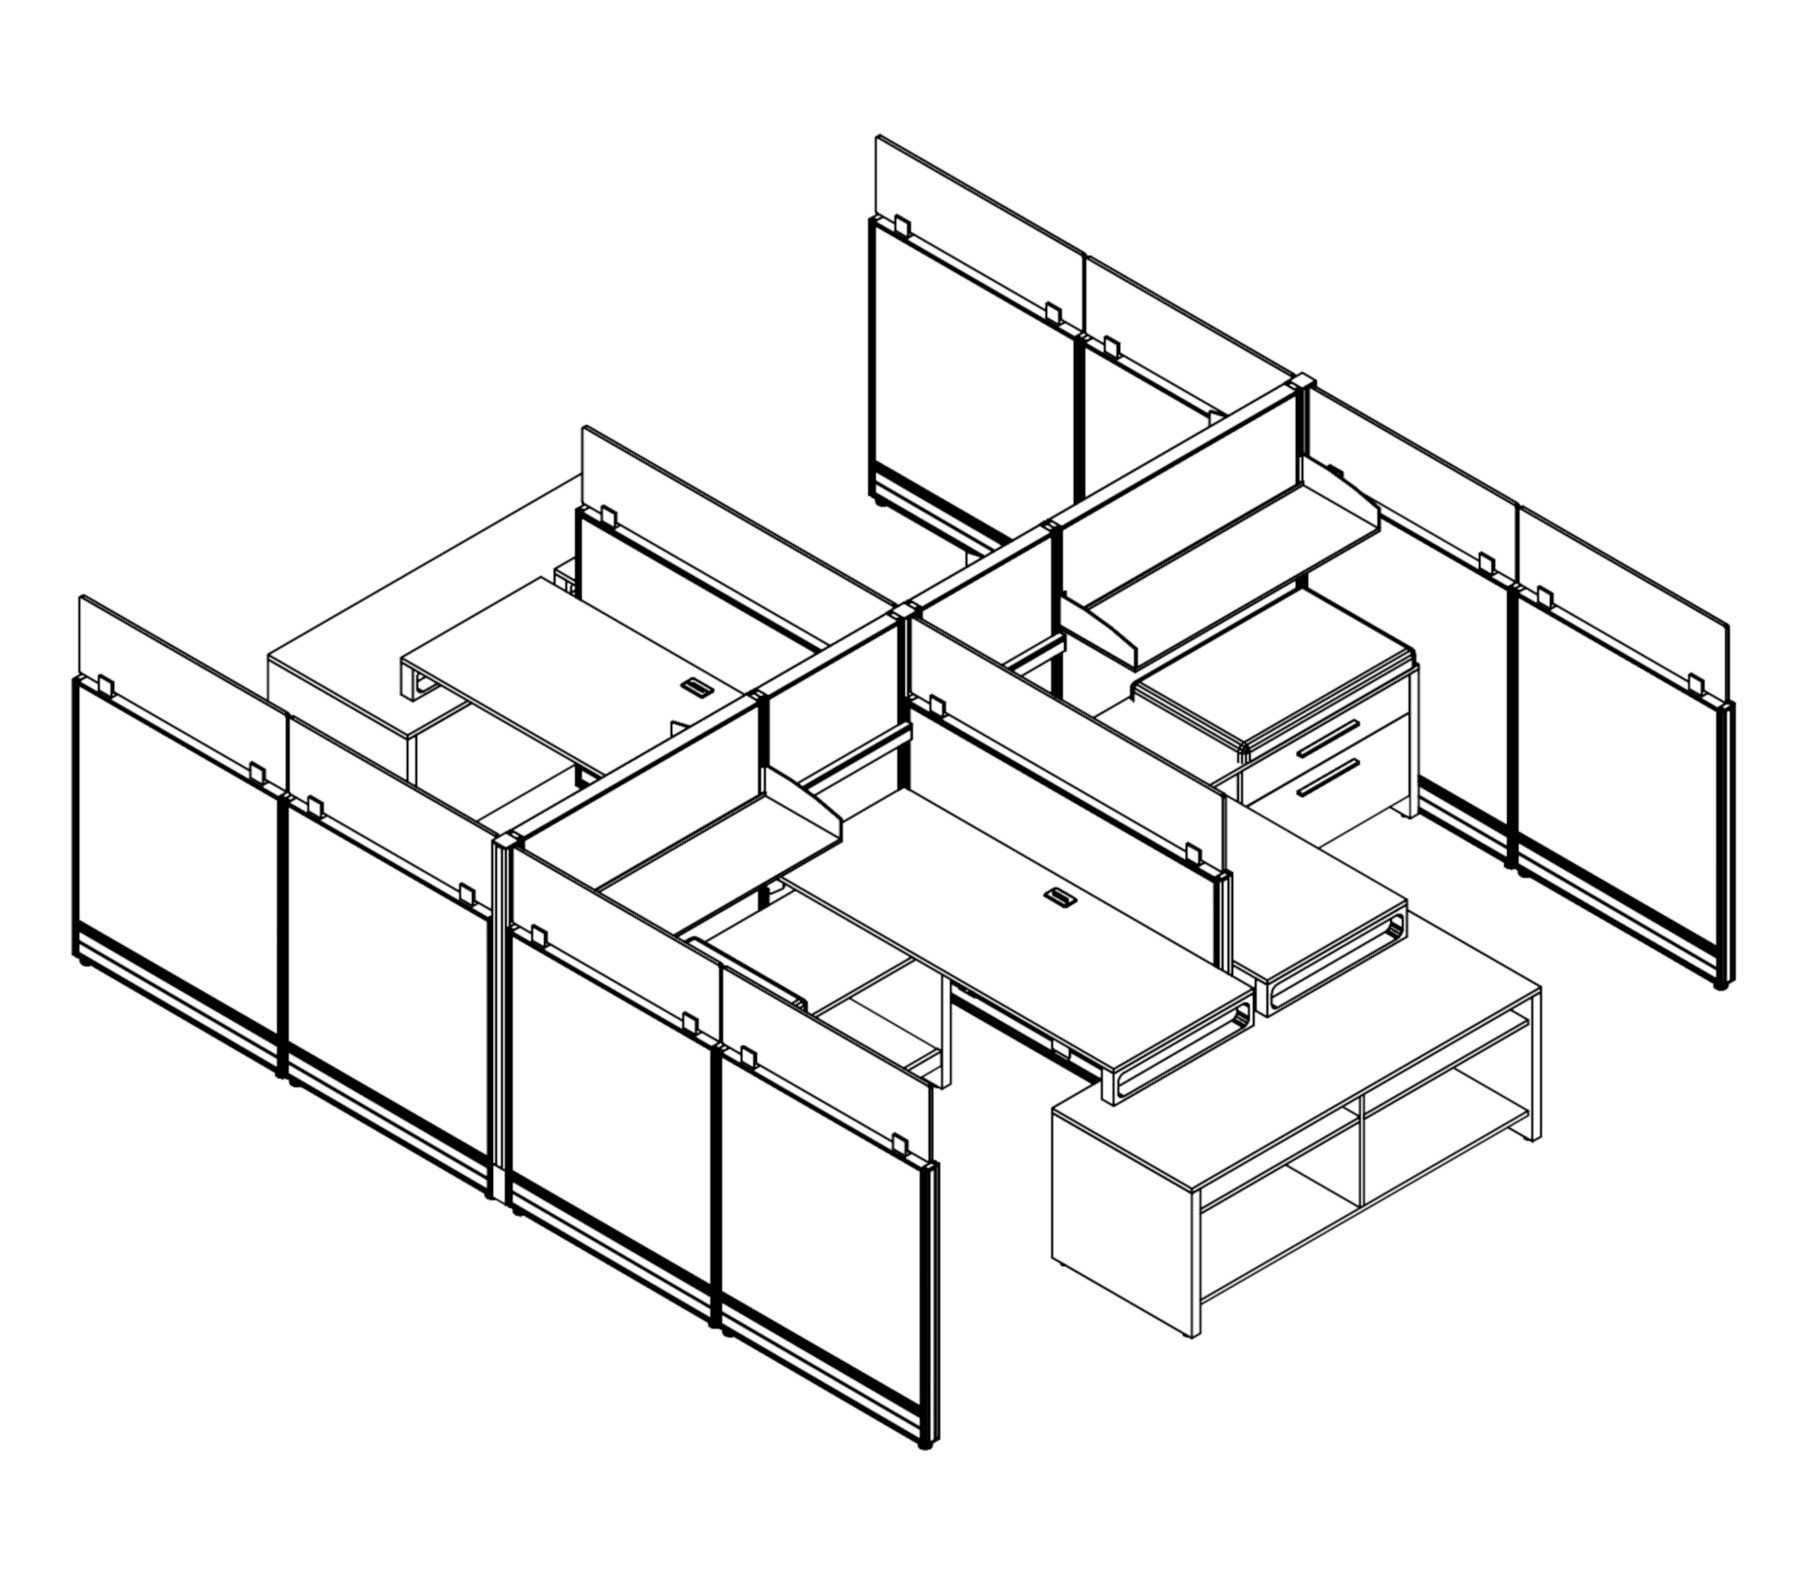 Technical drawing of the Compile CM504 4-Pack of work stations. Each station is partially enclosed, with a small work area placed on the back wall. At the front, is a pair of neighboring credenzas.